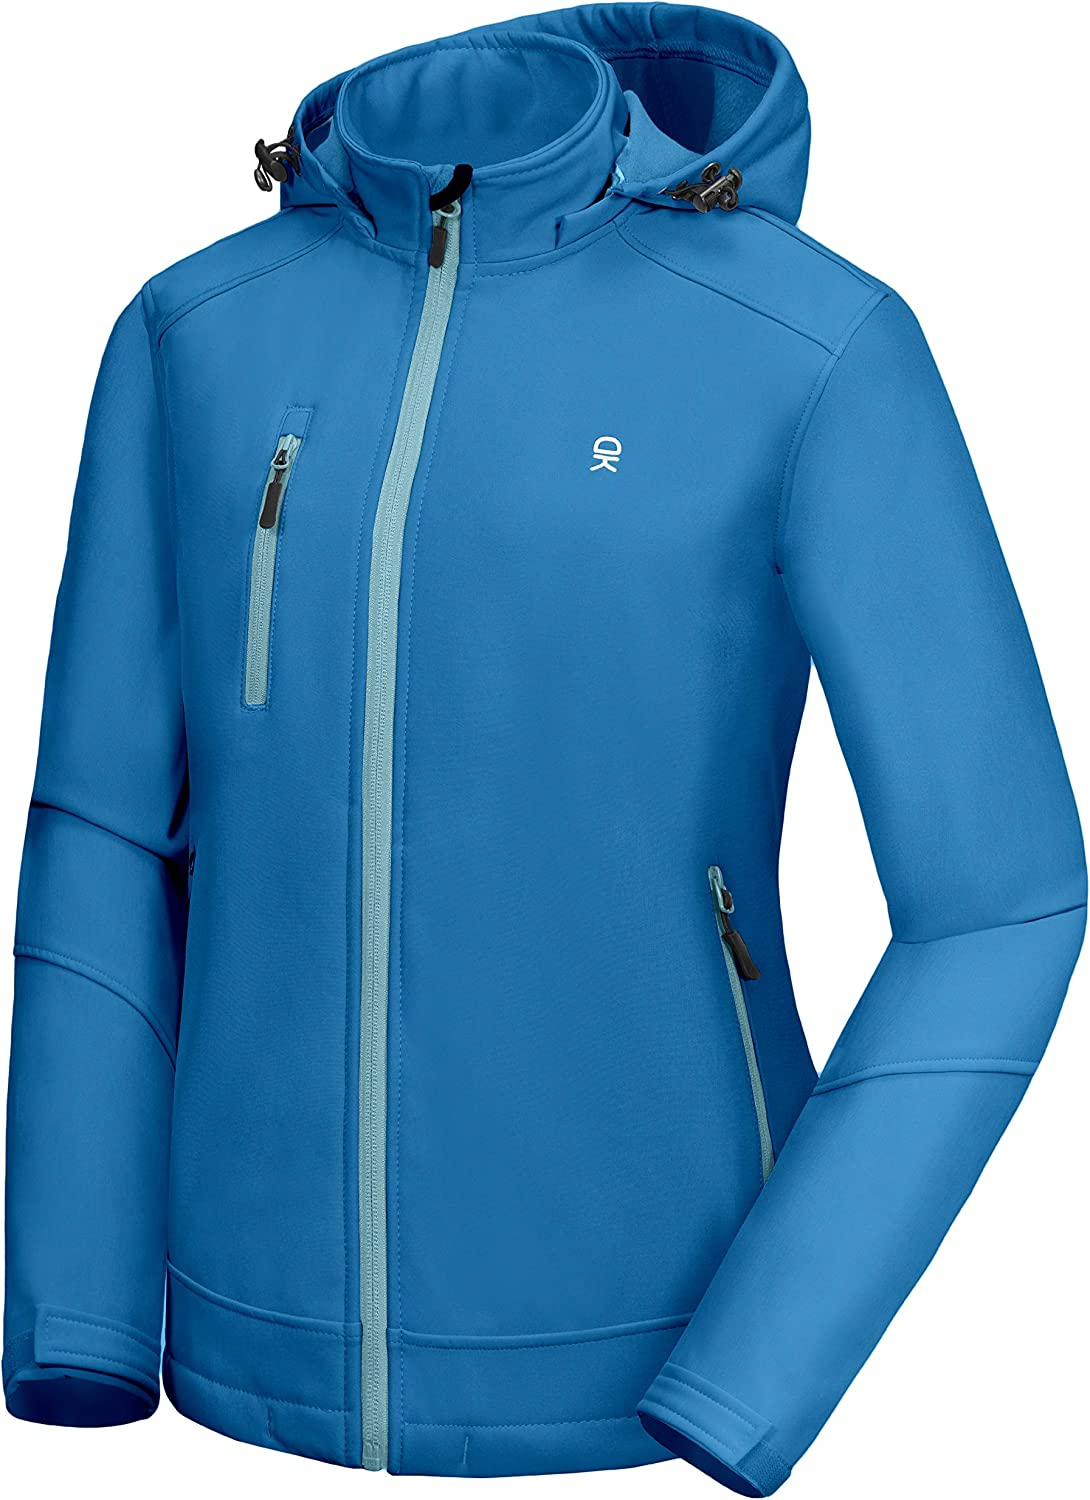 Max 64% OFF Little Donkey Andy Women's Nashville-Davidson Mall Softshell with Hood Jacket Removable